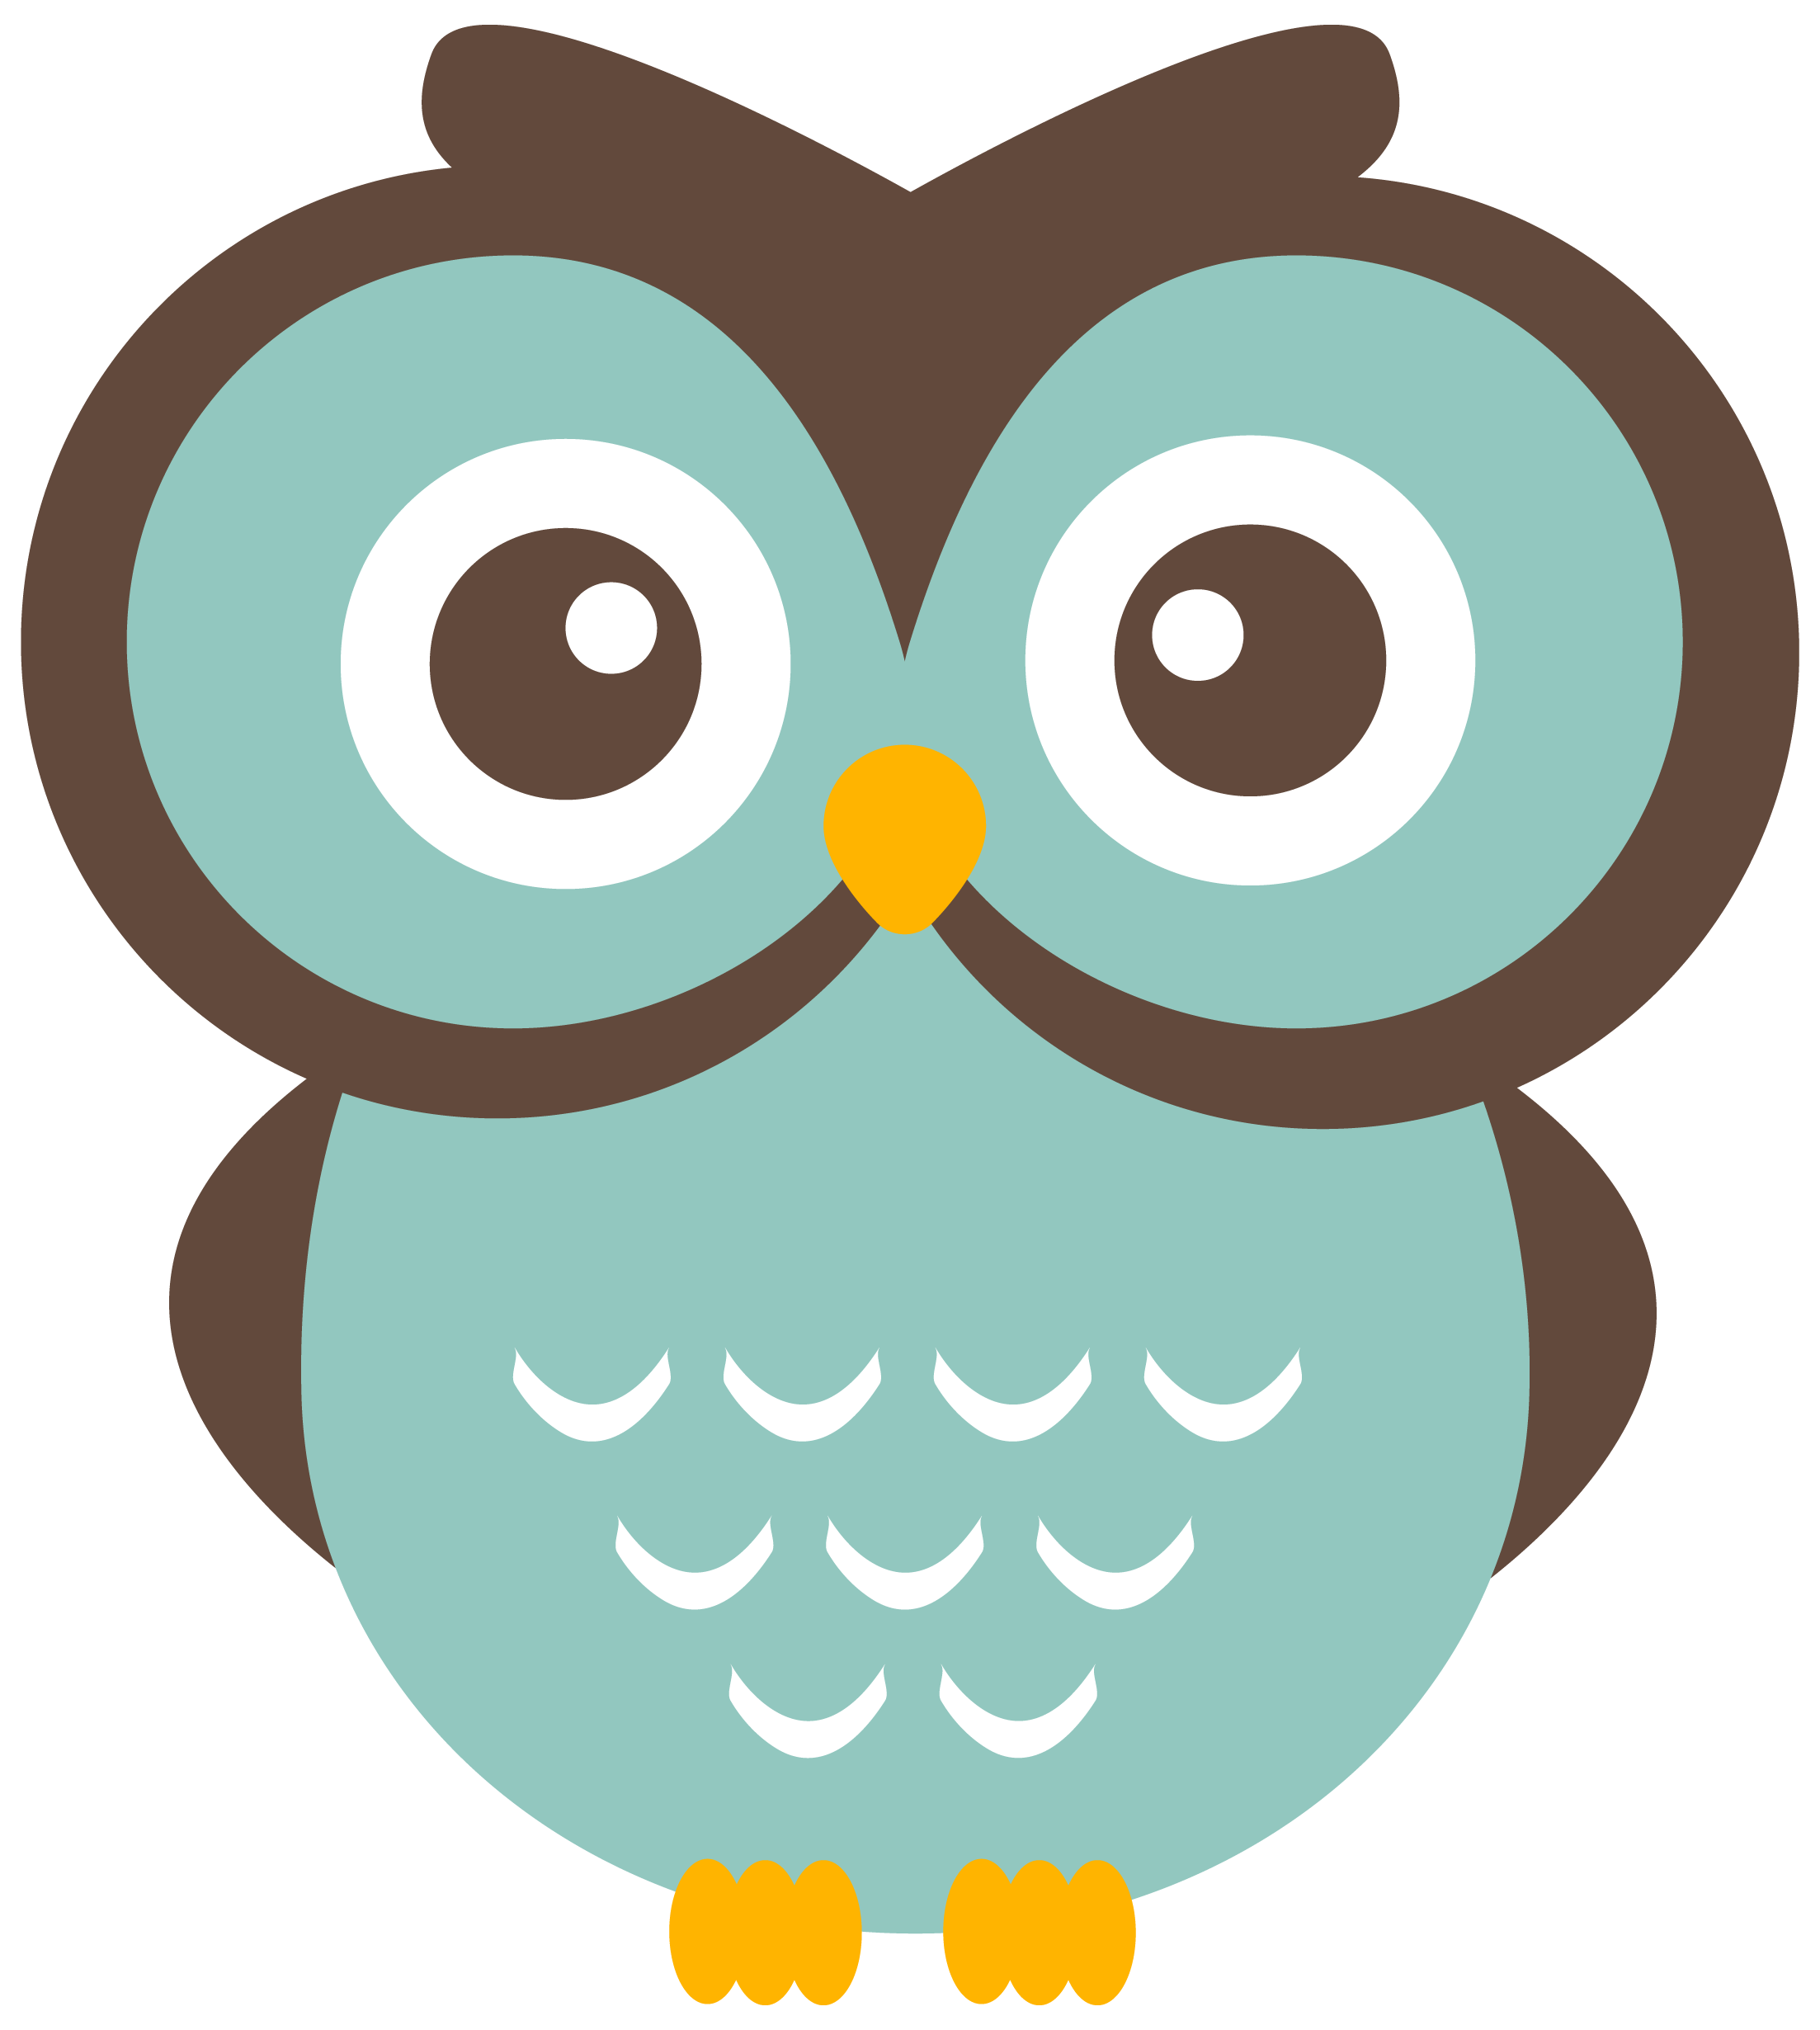 Owl heart clipart clipart royalty free library Teal Owl Clipart (free download to use) | Graphics: Flat, Halftone ... clipart royalty free library